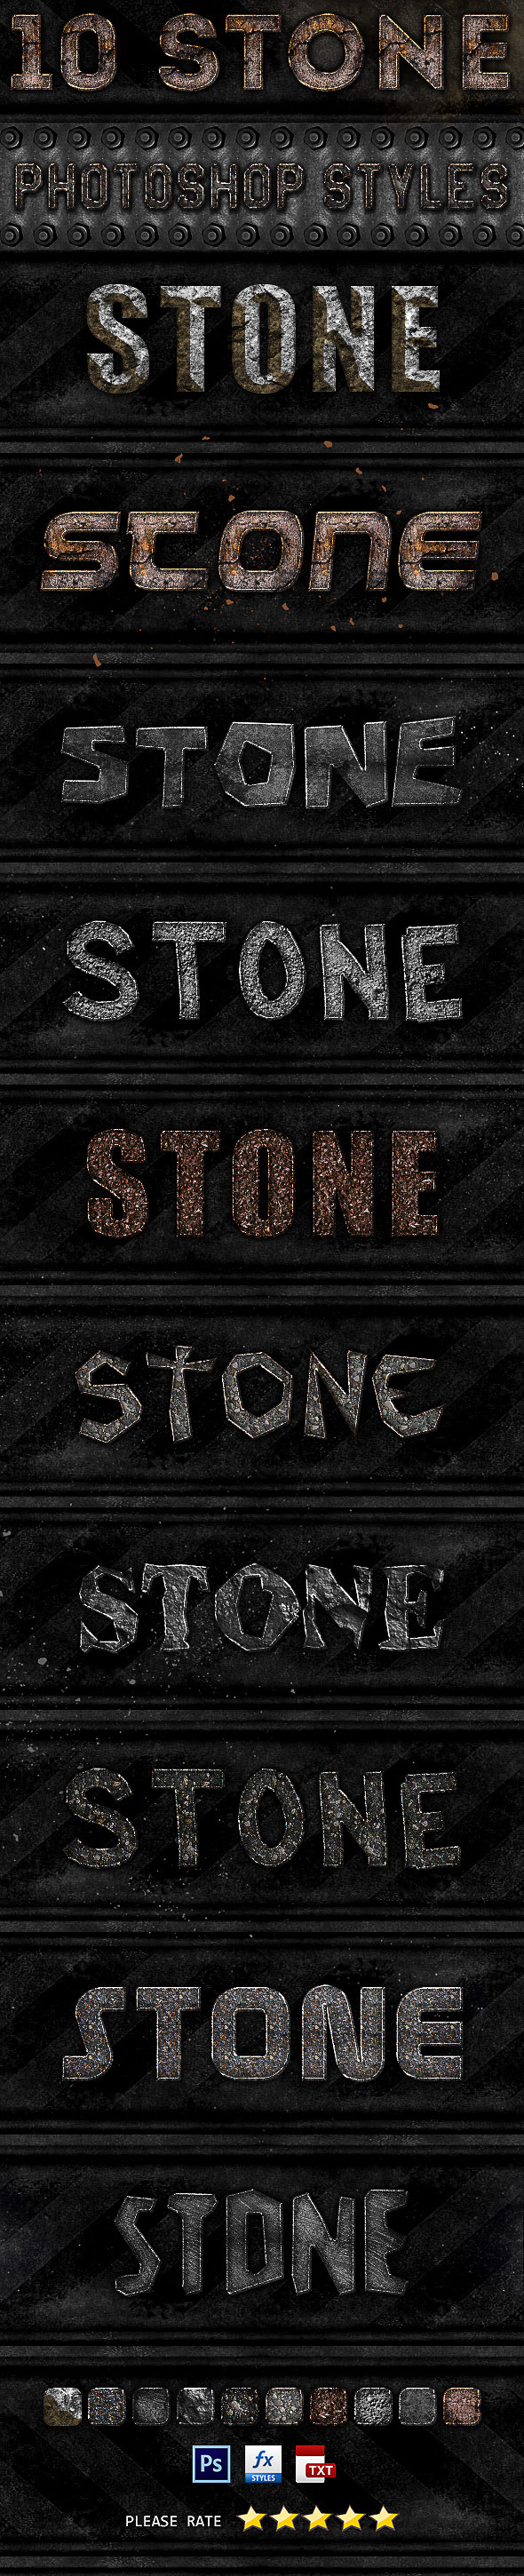 10 Stone Photoshop Styles - Text Effects Styles